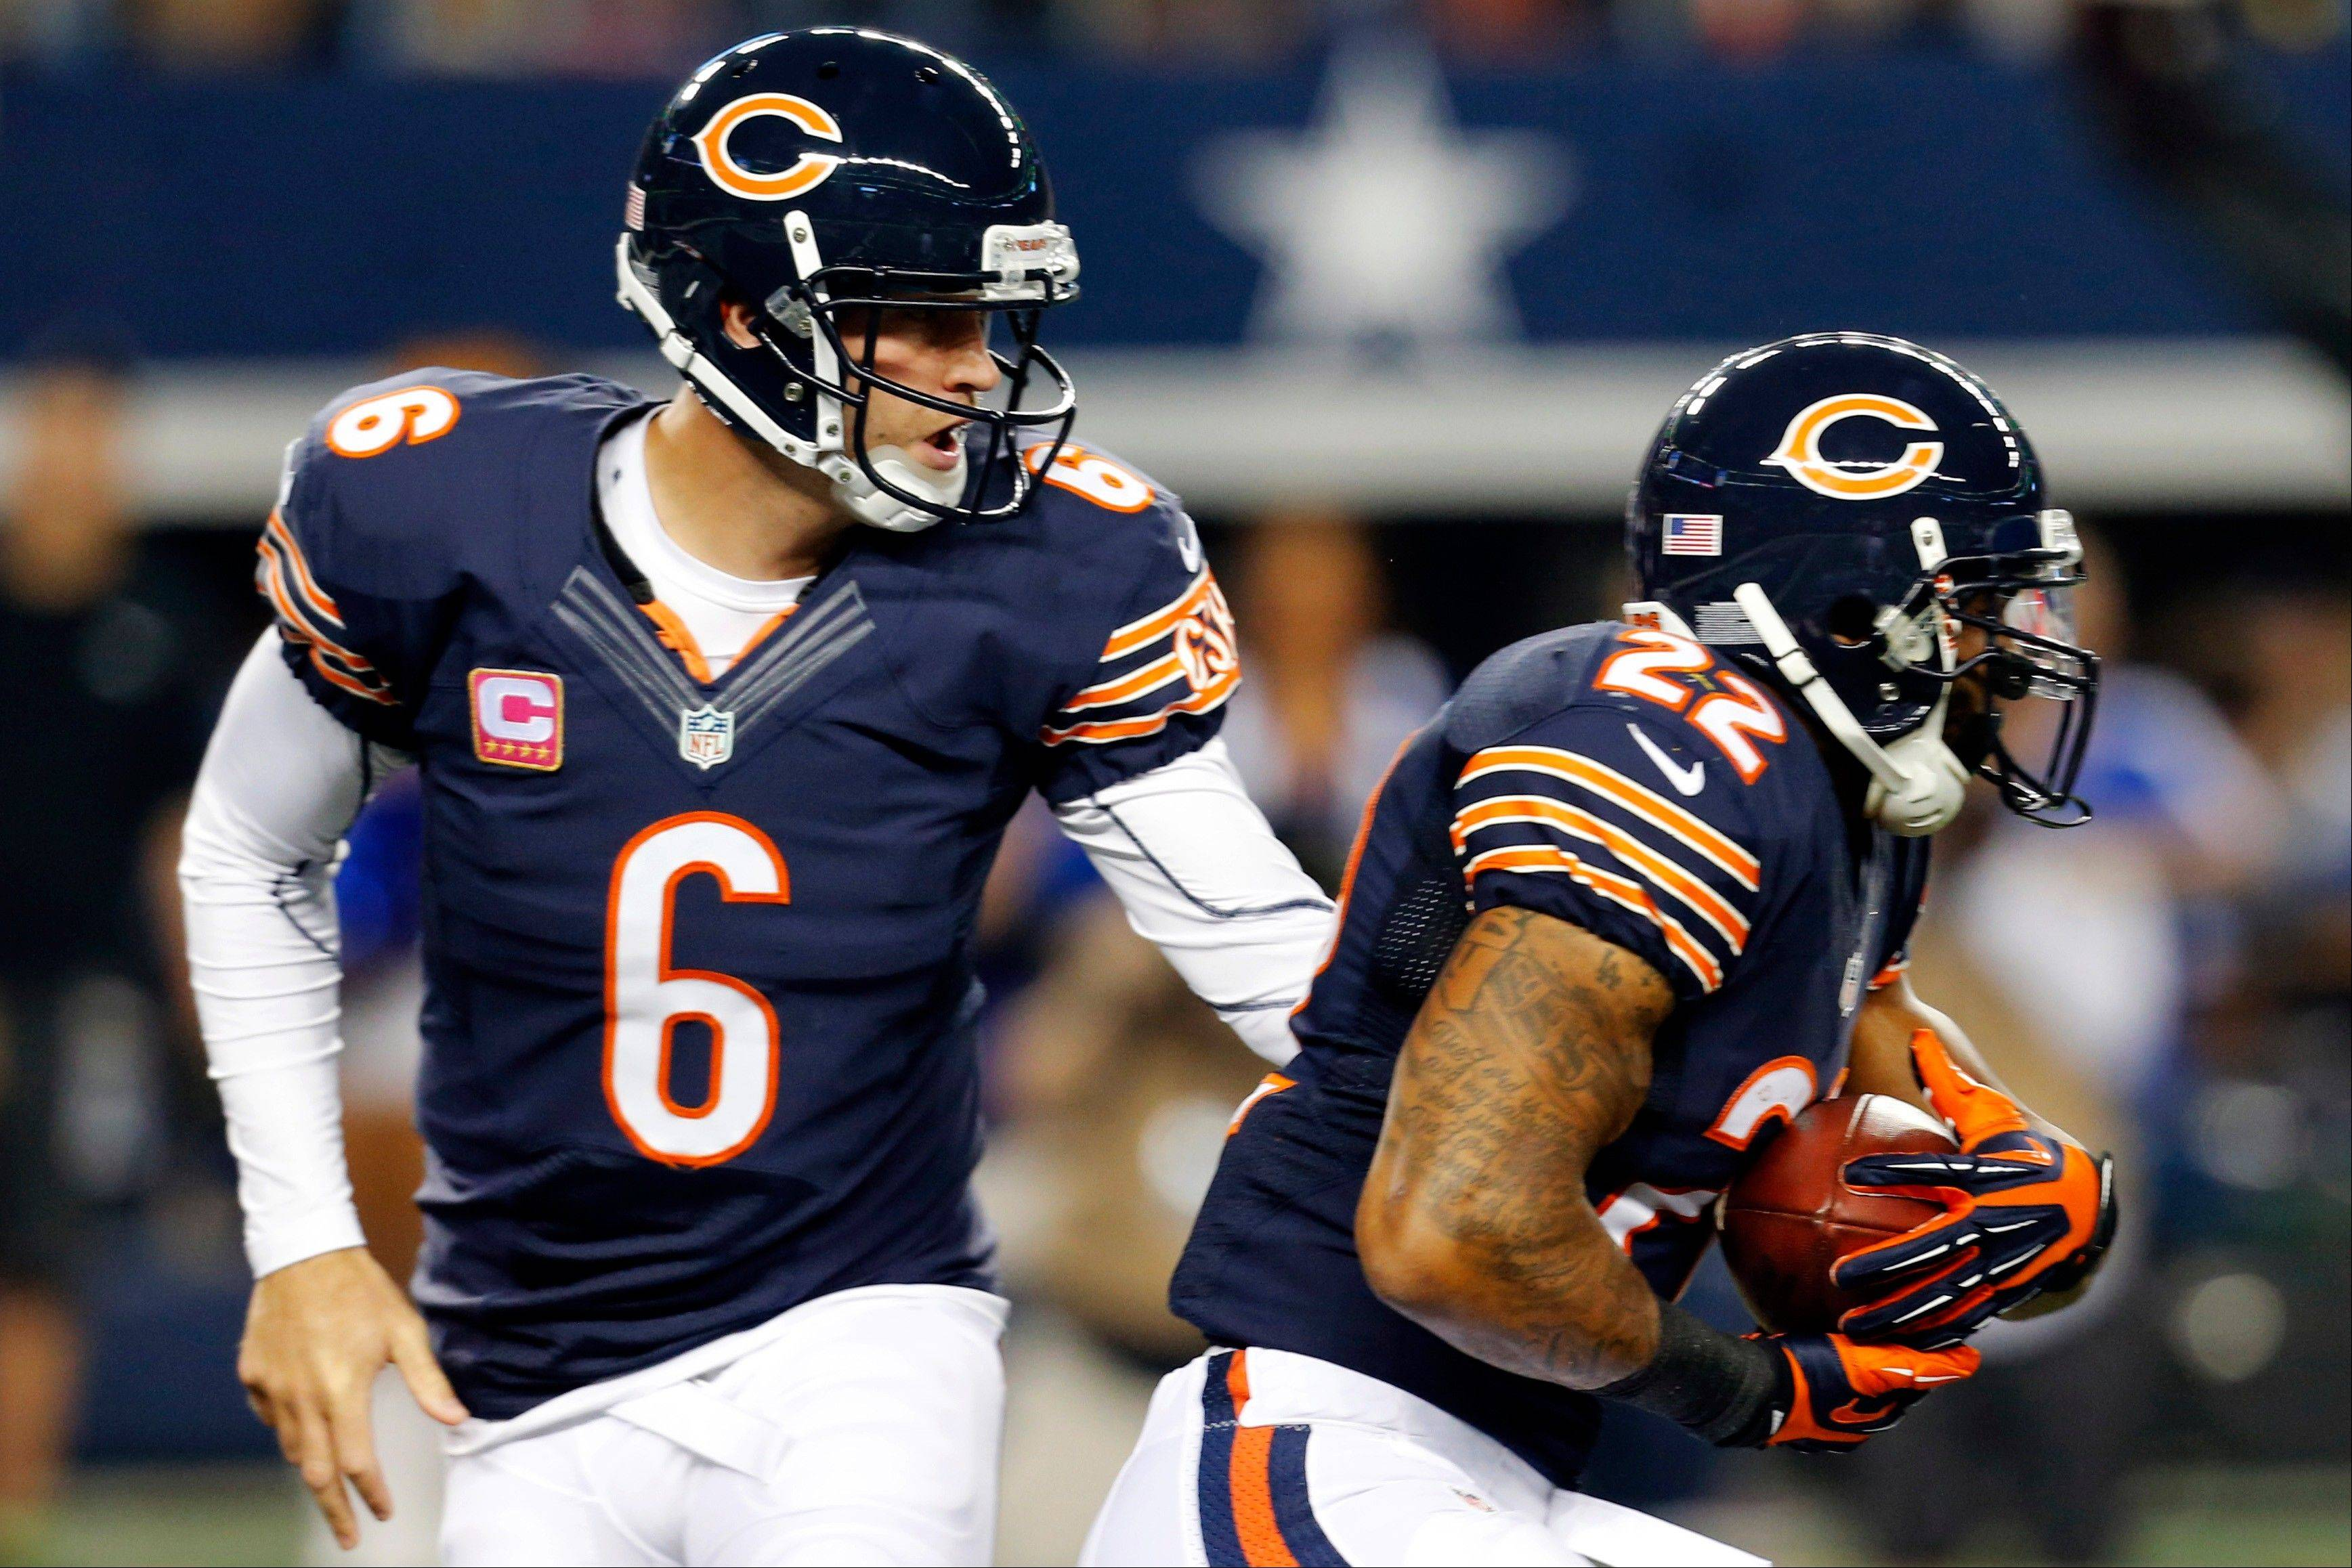 Chicago Bears' Jay Cutler hands off to running back Matt Forte in the first half.